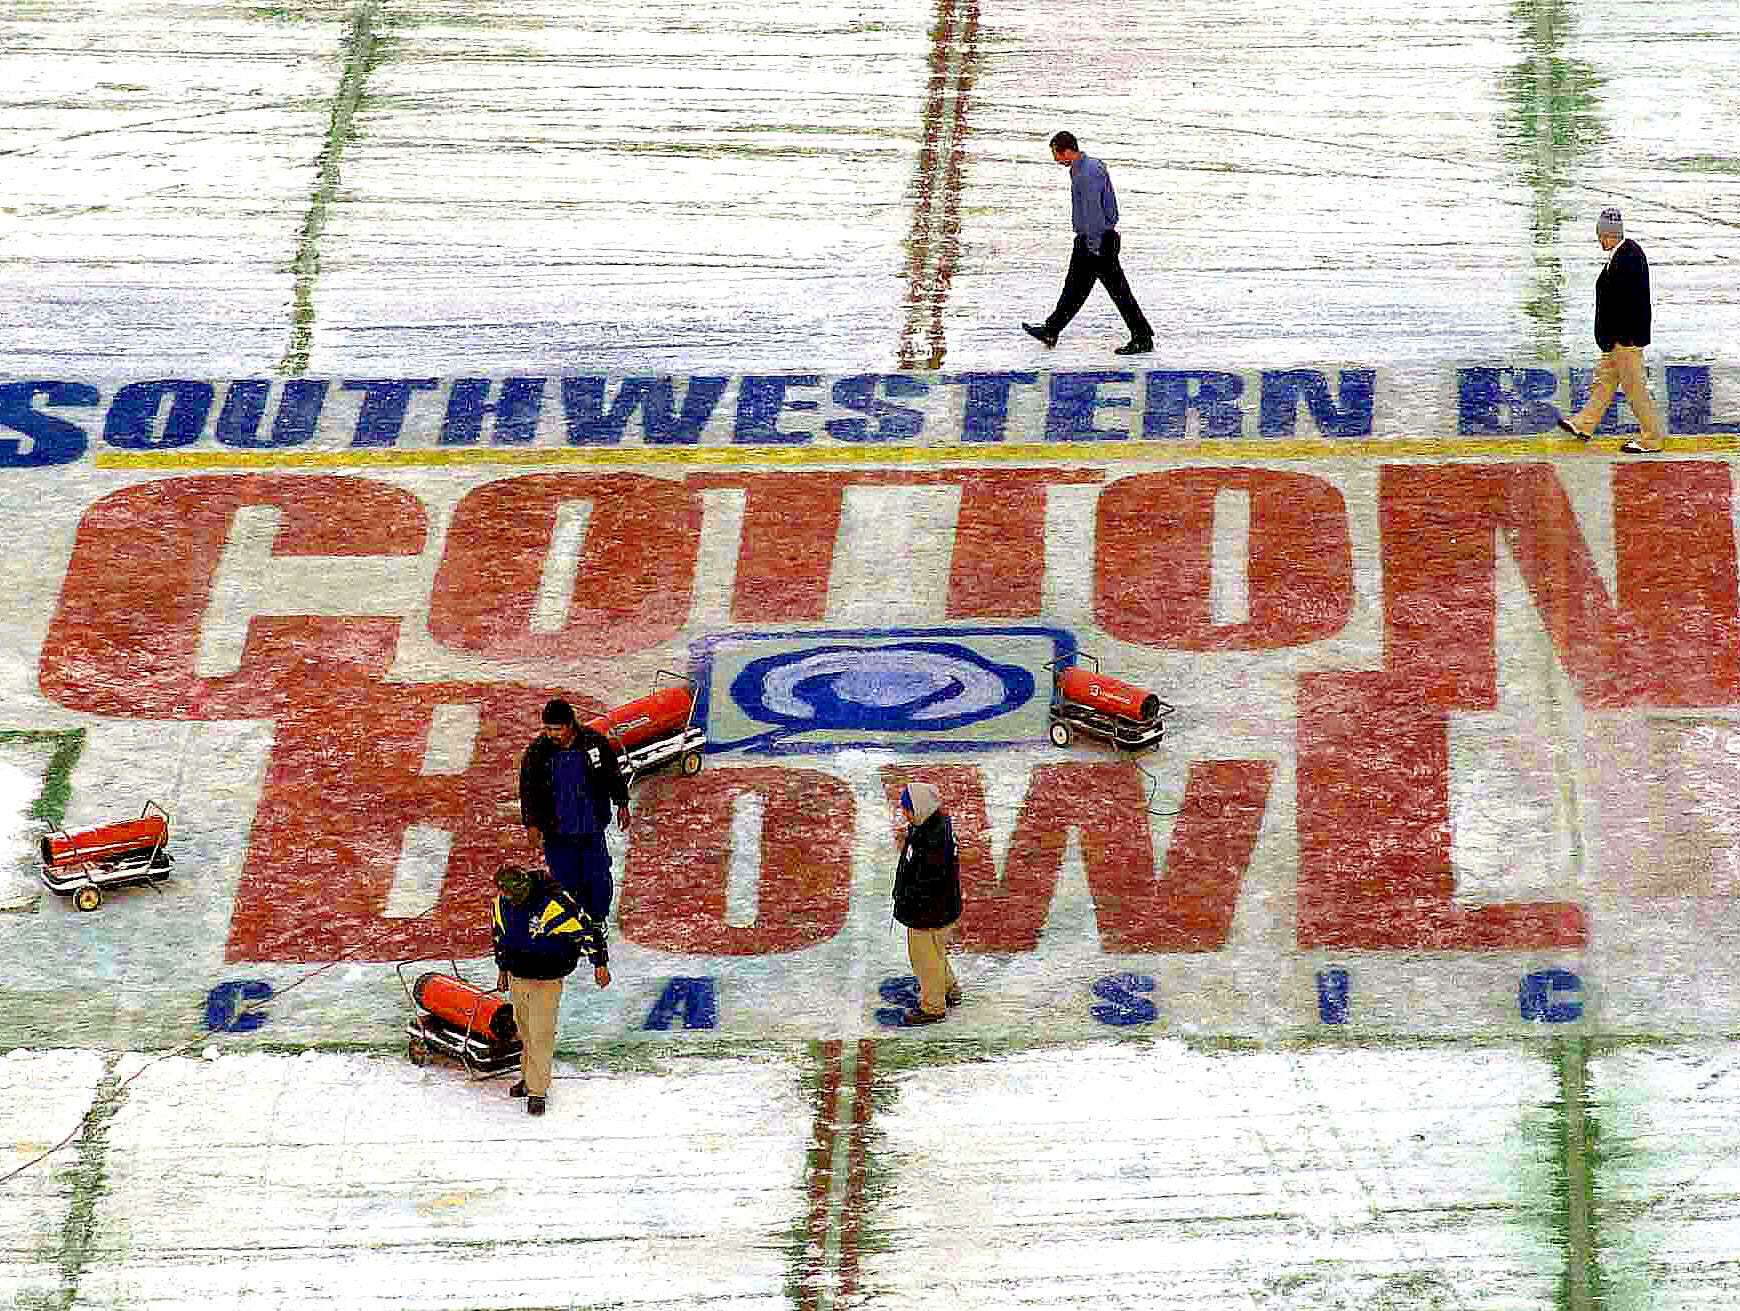 Cotton Bowl officials worked Monday morning to clear snow from the field from a 1/2-inch snow and ice storm which hit Dallas New Year's Eve. the Cotton Bowl game was scheduled to begin at 10:16 a.m. in Dallas.